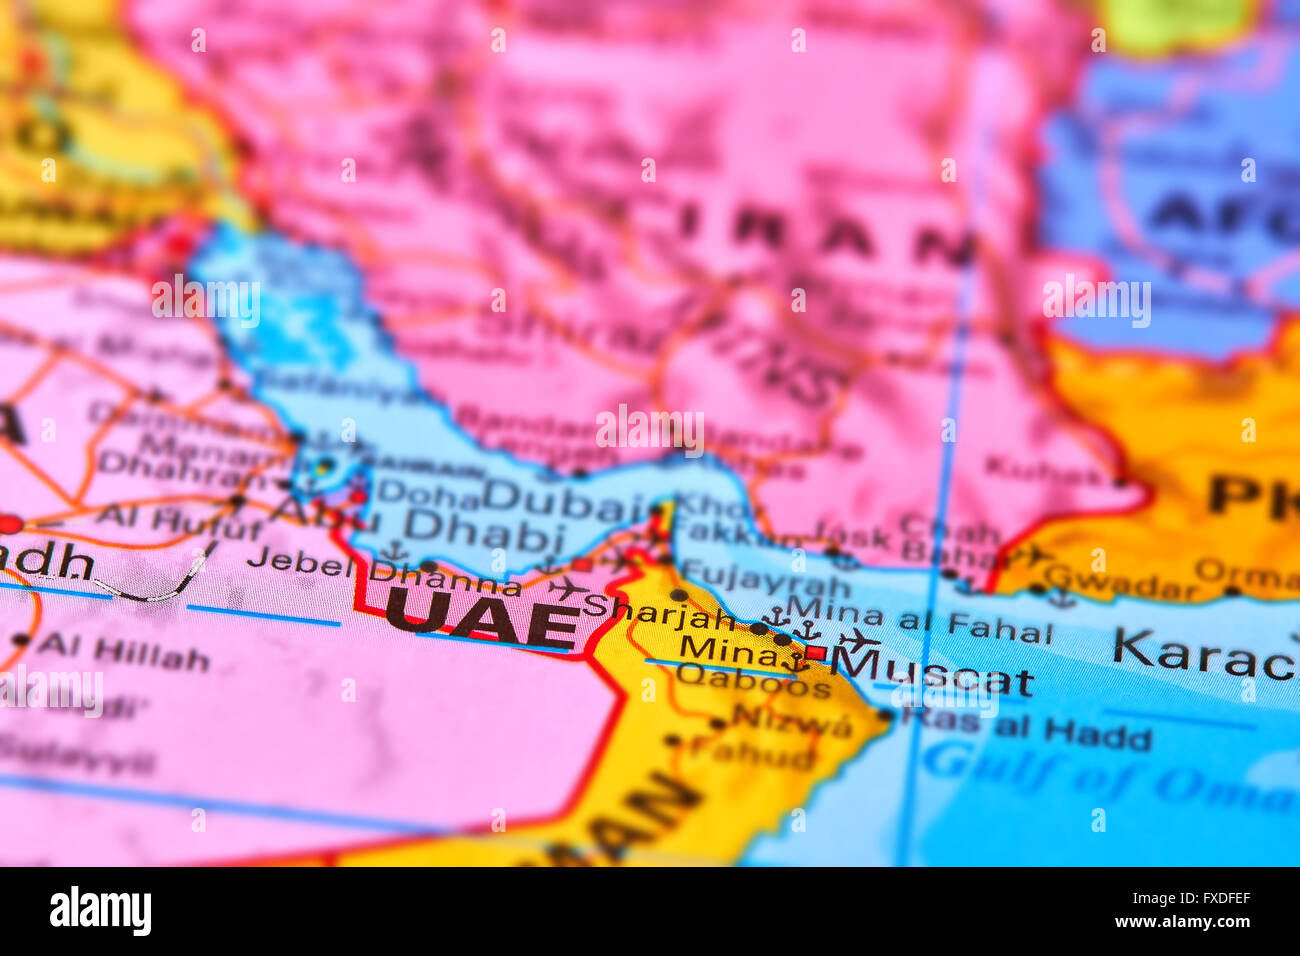 Picture of: United Arab Emirates Country In The Middle East On The World Map Stock Photo Alamy